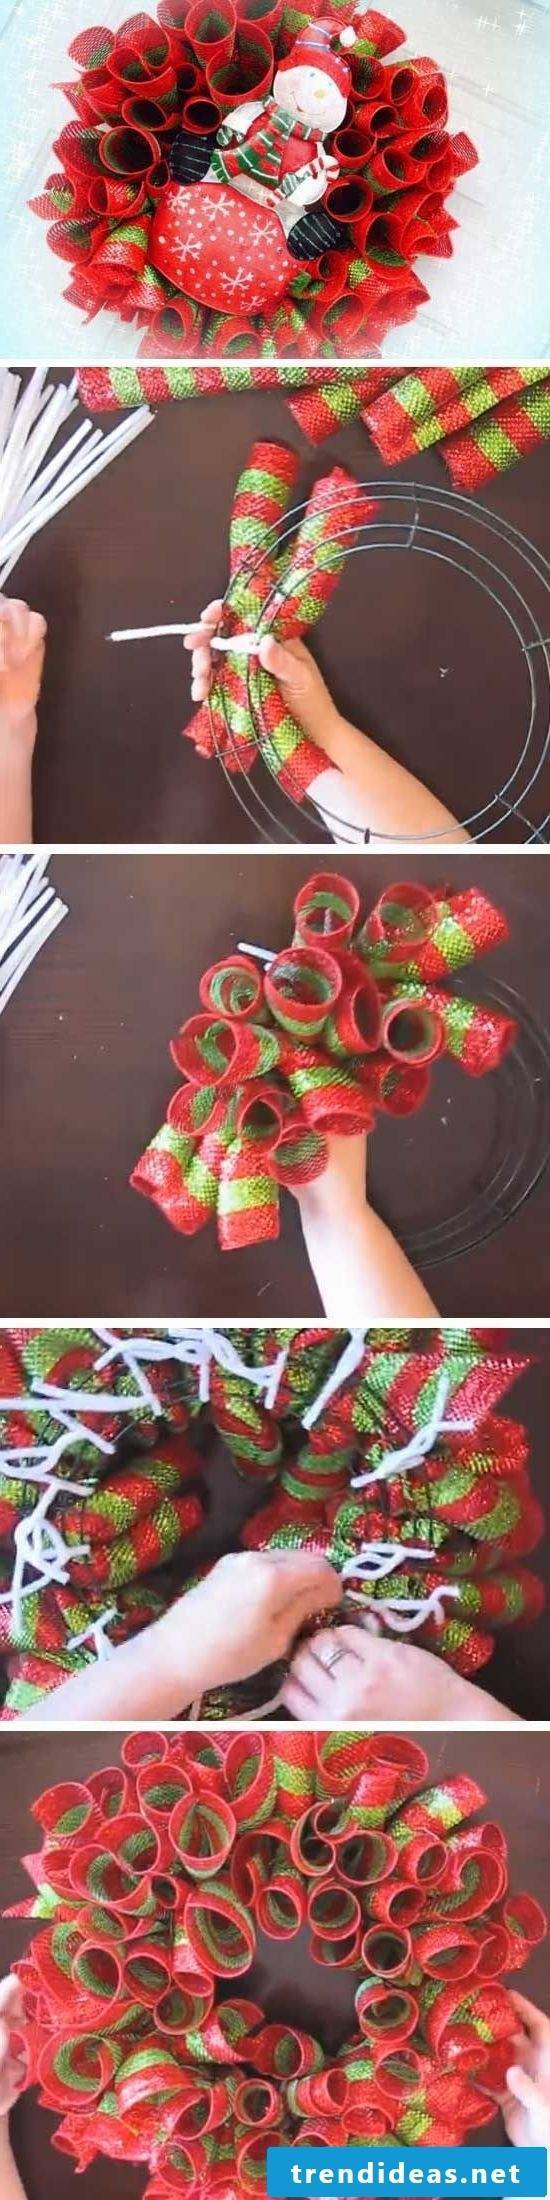 Net grinding wreath